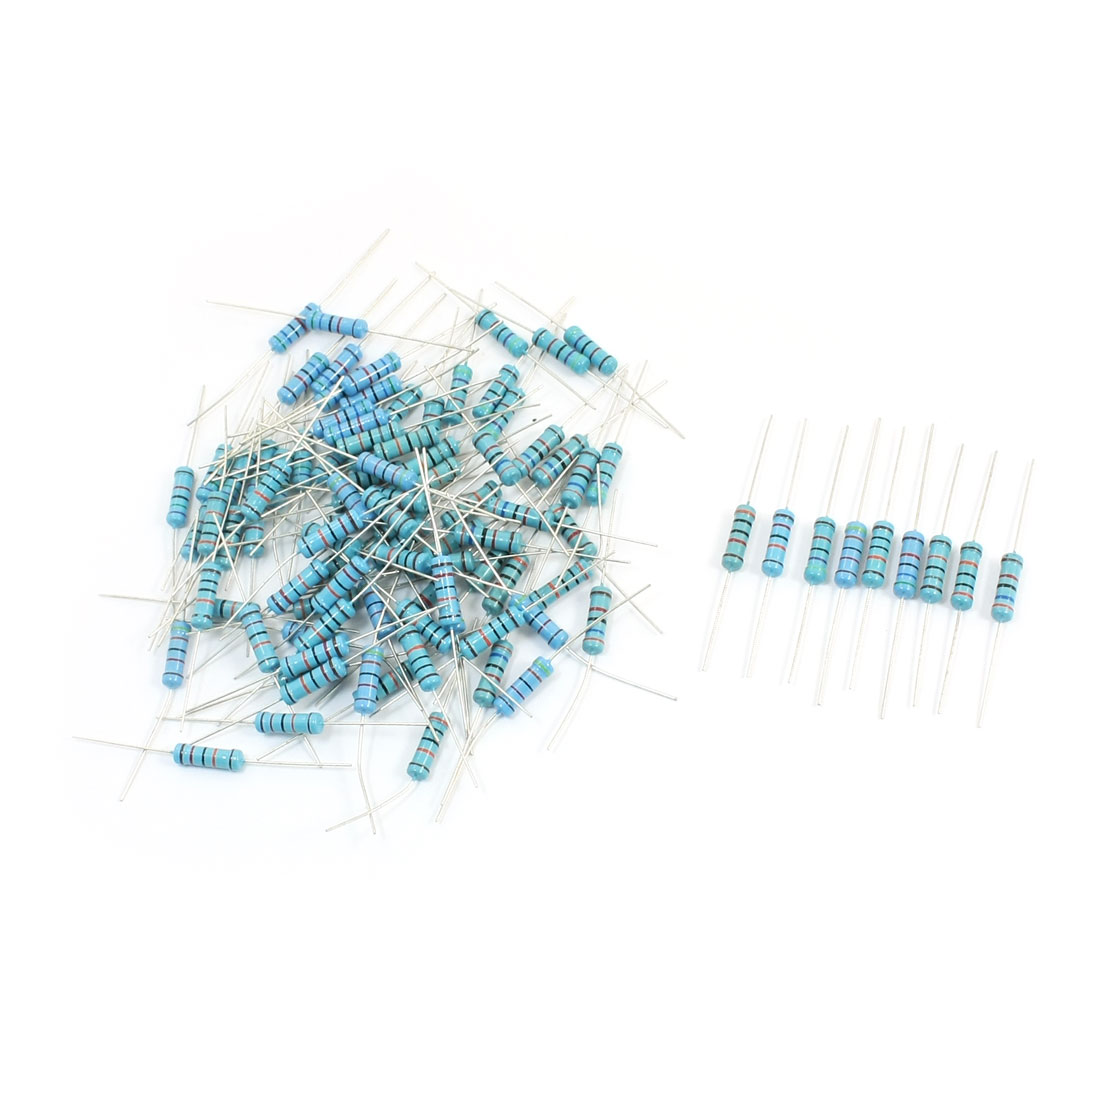 100Pcs 2W 10 Values 30K-180K Ohm 1% Tolerance Axial lead High Precision Metal Flim Resistors Assembly Kit